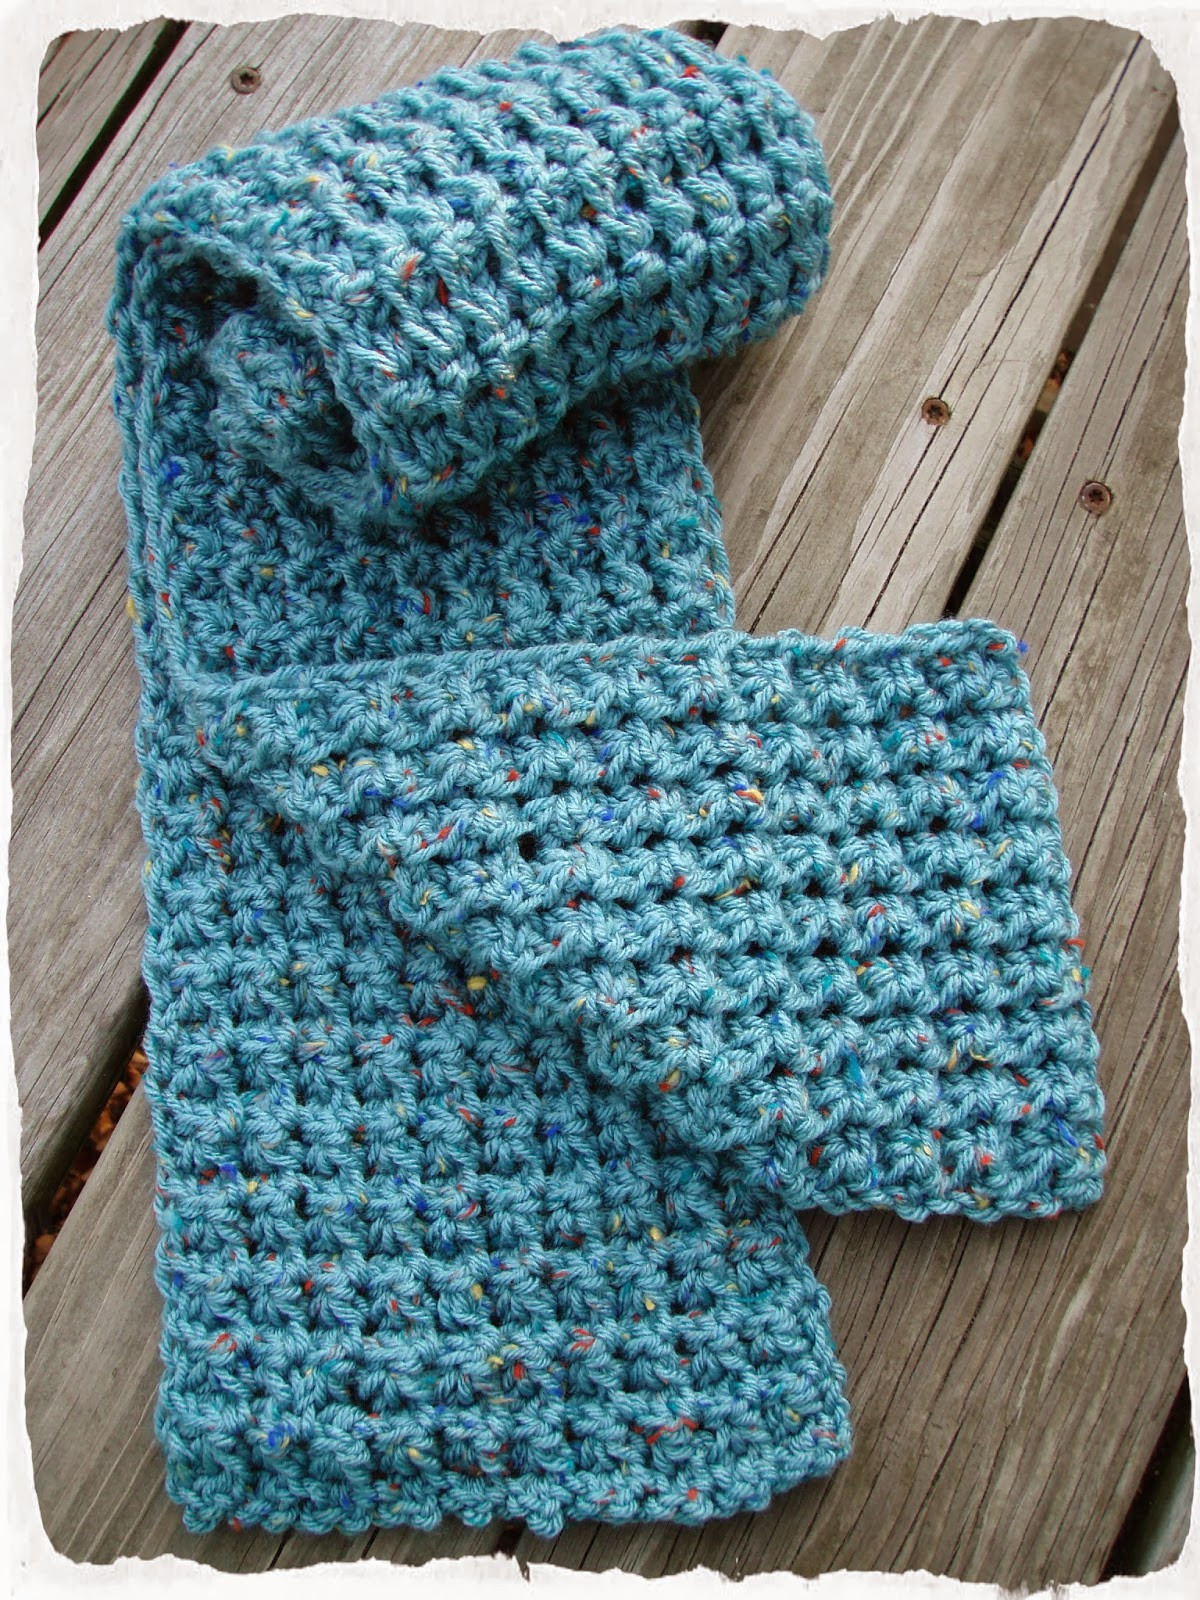 Crochet Stitch Patterns Best Of This Housewife Life Trinity Stitch Scarf Free Pattern Of Marvelous 44 Photos Crochet Stitch Patterns